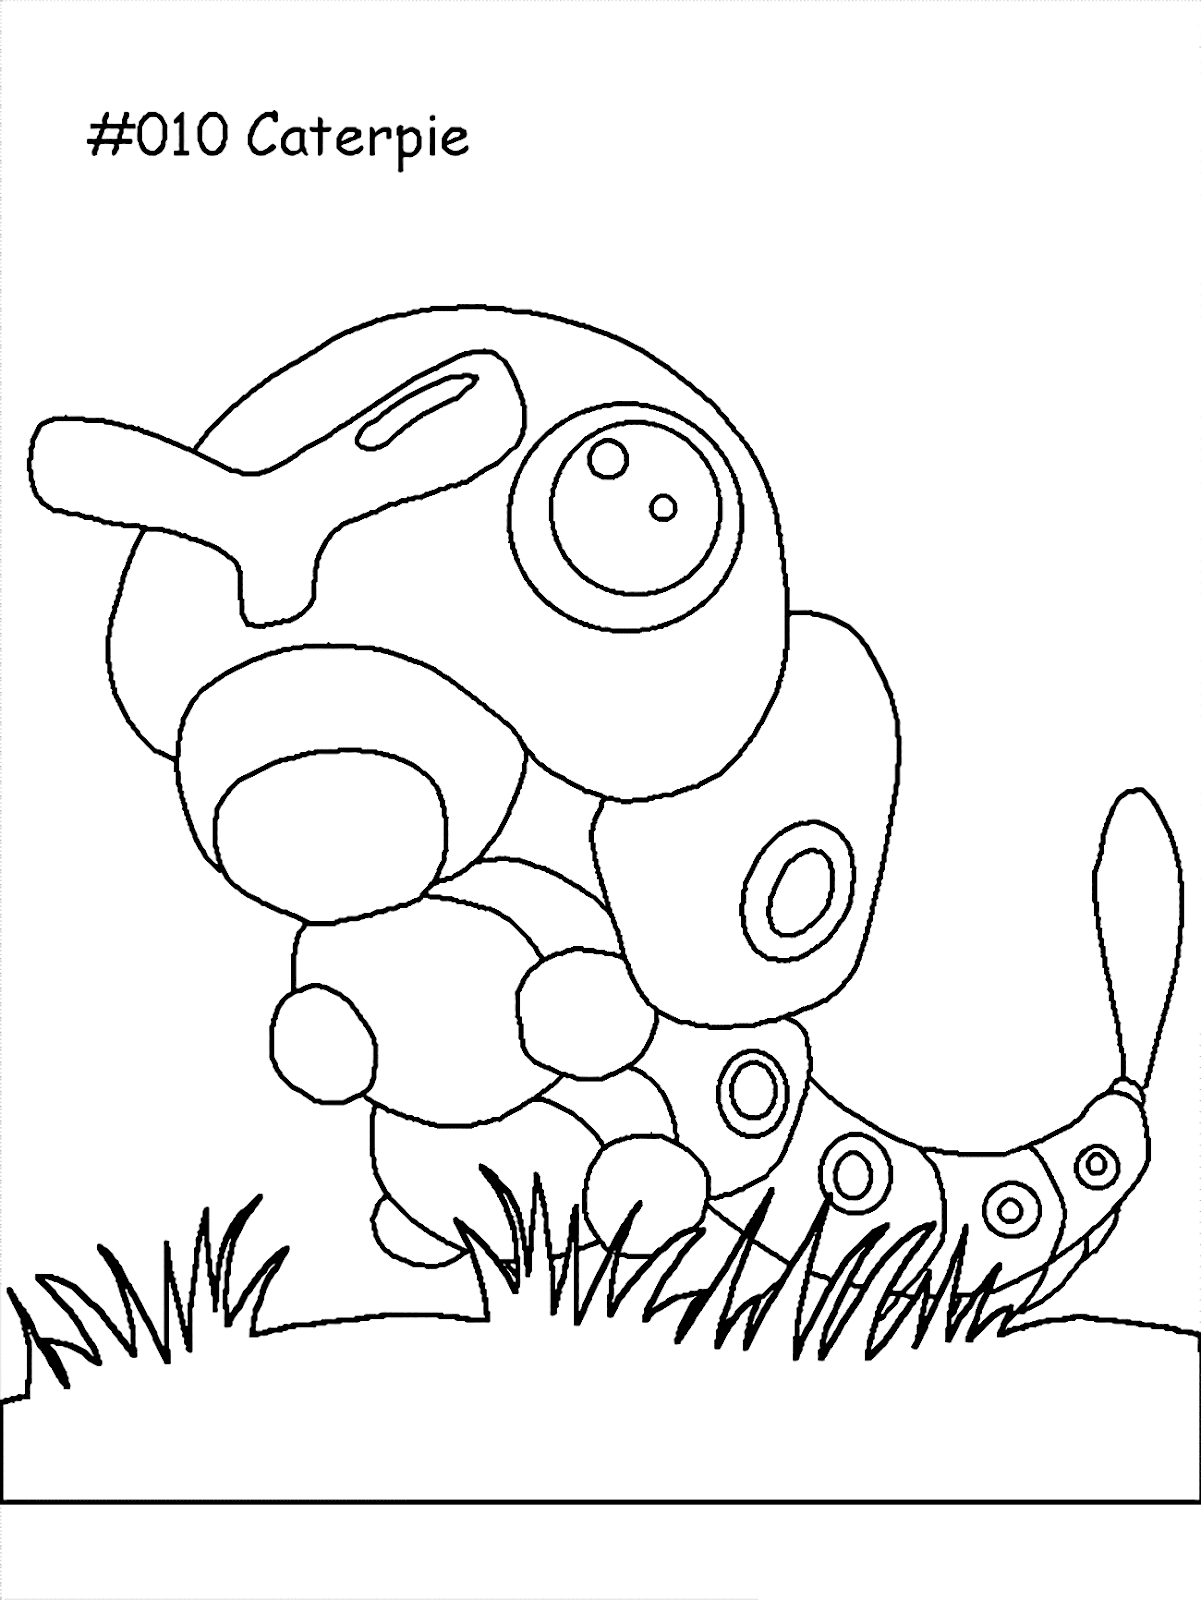 Caterpie Pokemon Coloring Pages Dolphin Coloring Pages Pokemon Coloring Pages Pokemon Coloring